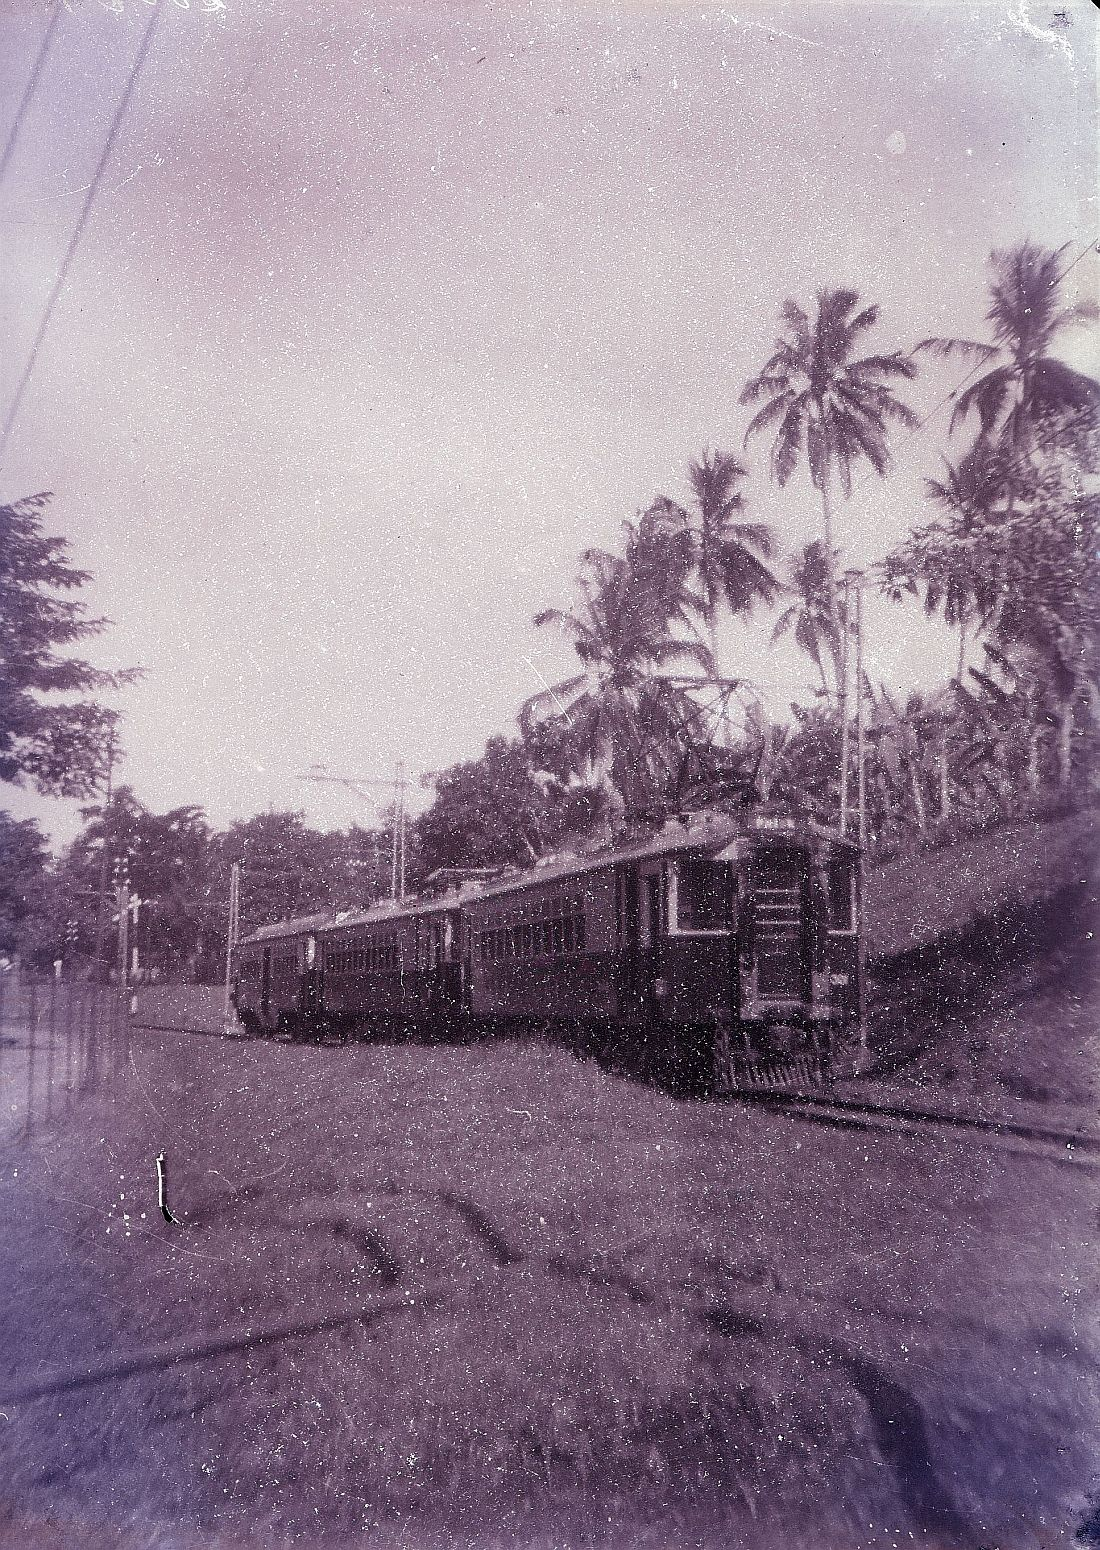 De 3201 richting Priok (1926)